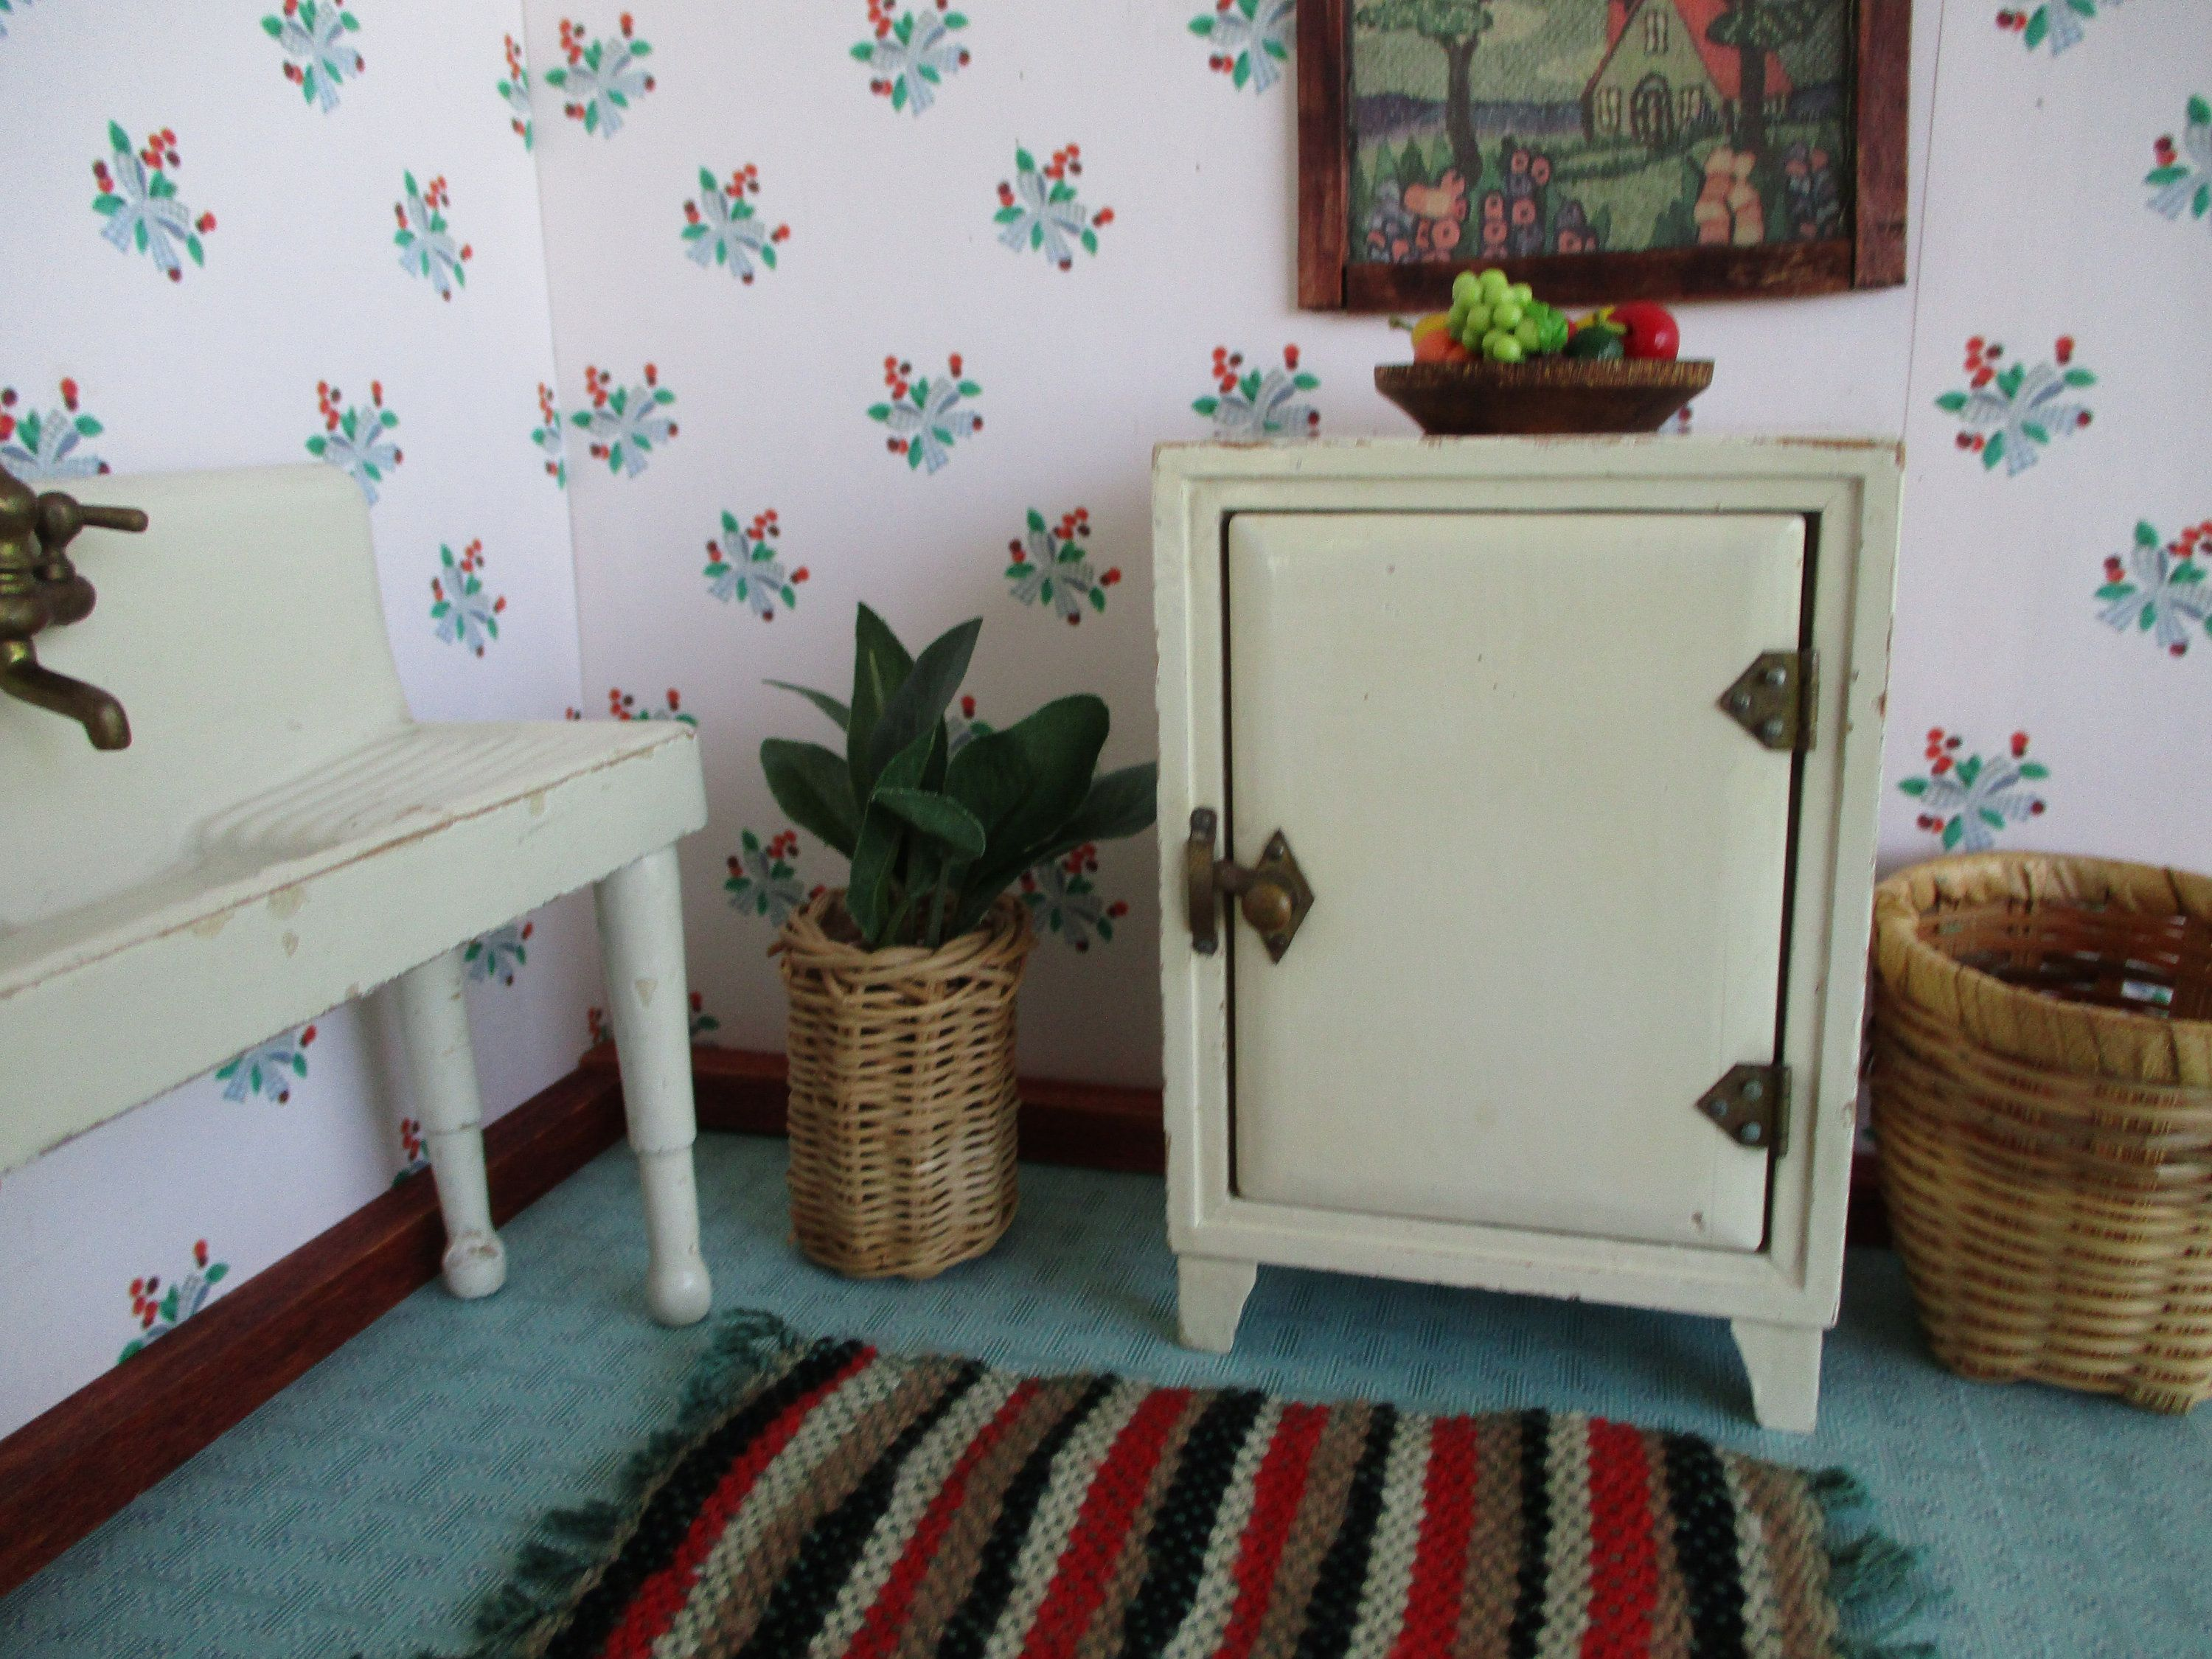 Vintage Dollhouse Furniture - Wooden Kitchen Refrigerator in Off- White Enamel -Brass Fixtures - Large 1:12 - Made in Japan - ca. 1920s